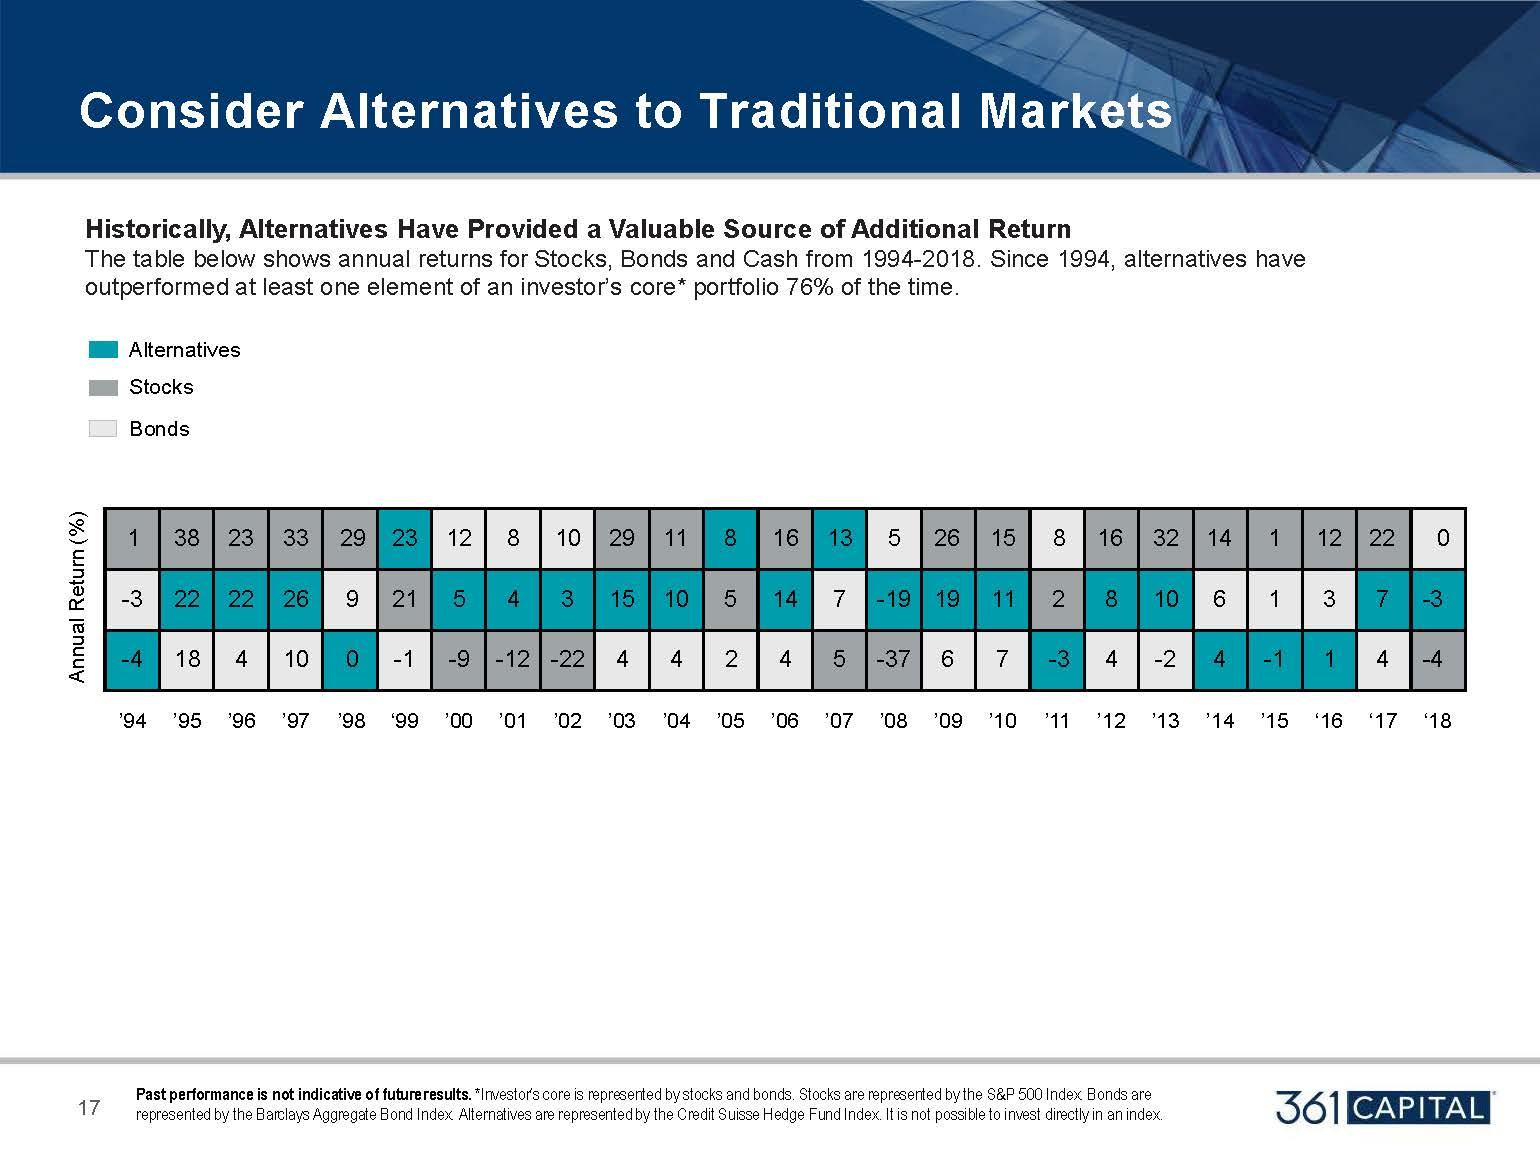 Historically, Alternatives have provided a valuable source of additional return